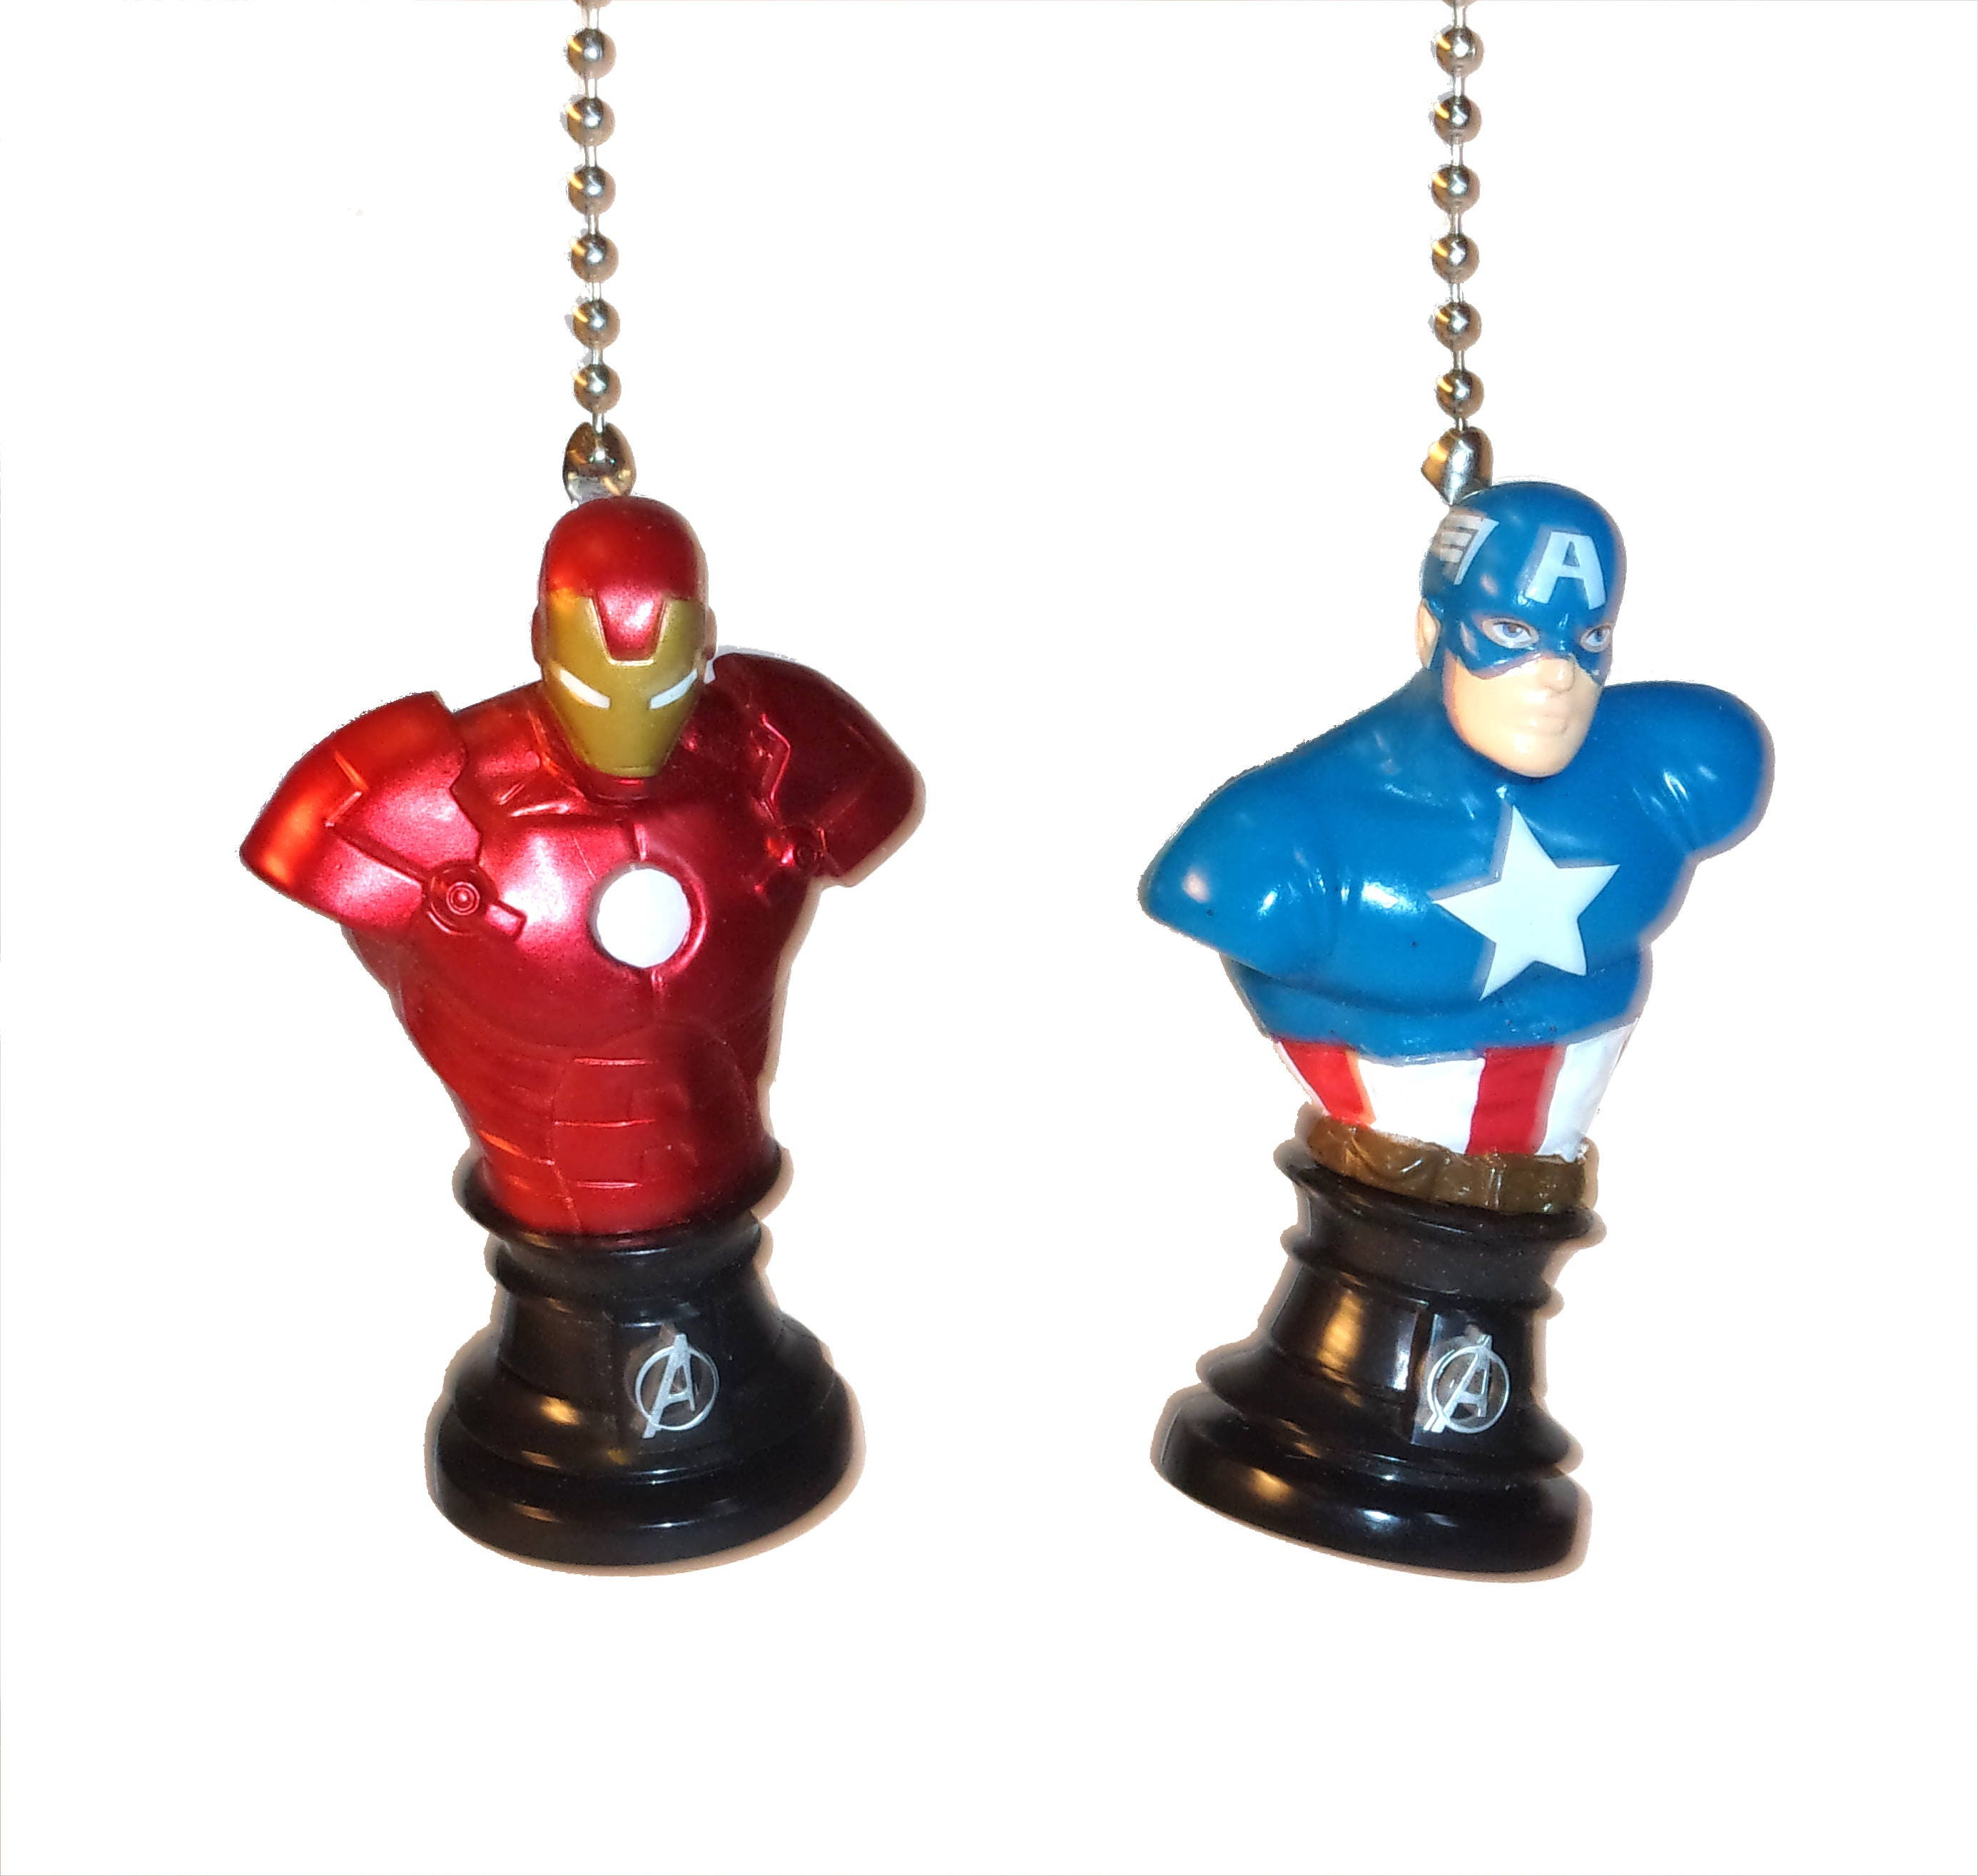 Capt america iron man hulk spiderman ceiling fan light pulls capt america iron man hulk spiderman ceiling fan light pulls avengers civil war kids room decor man cave gift for boys gift for kids aloadofball Gallery